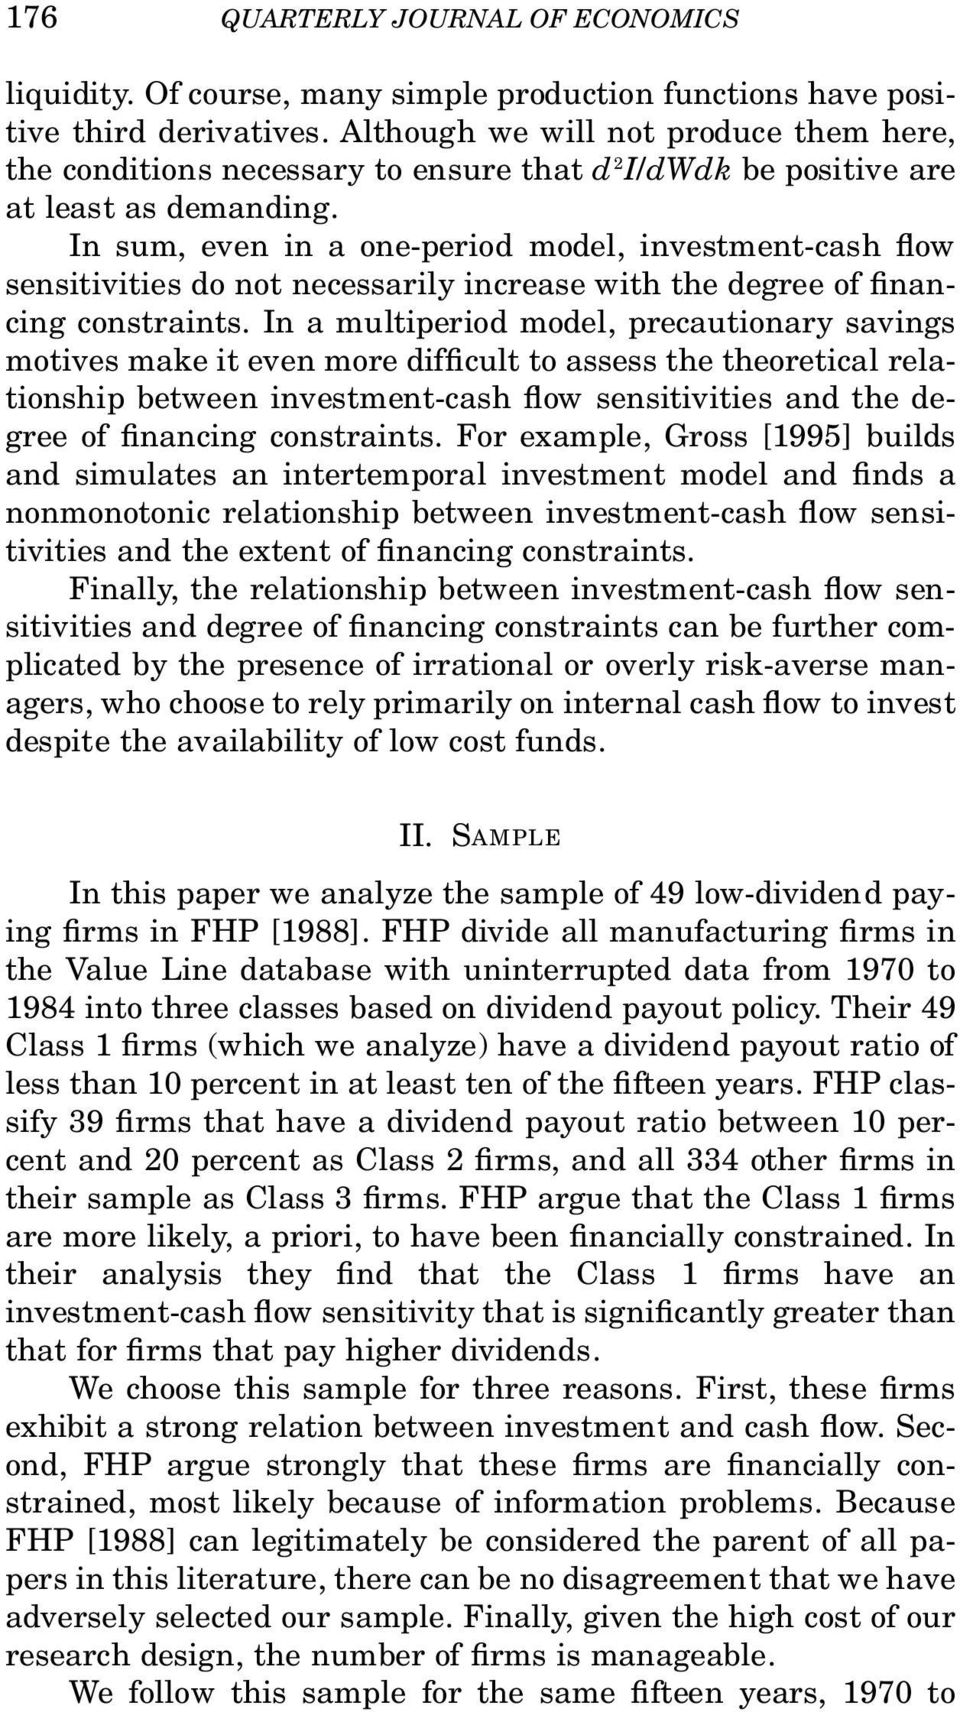 In sum, even in a one-period model, investment-cash ow sensitivities do not necessarily increase with the degree of nancing constraints.